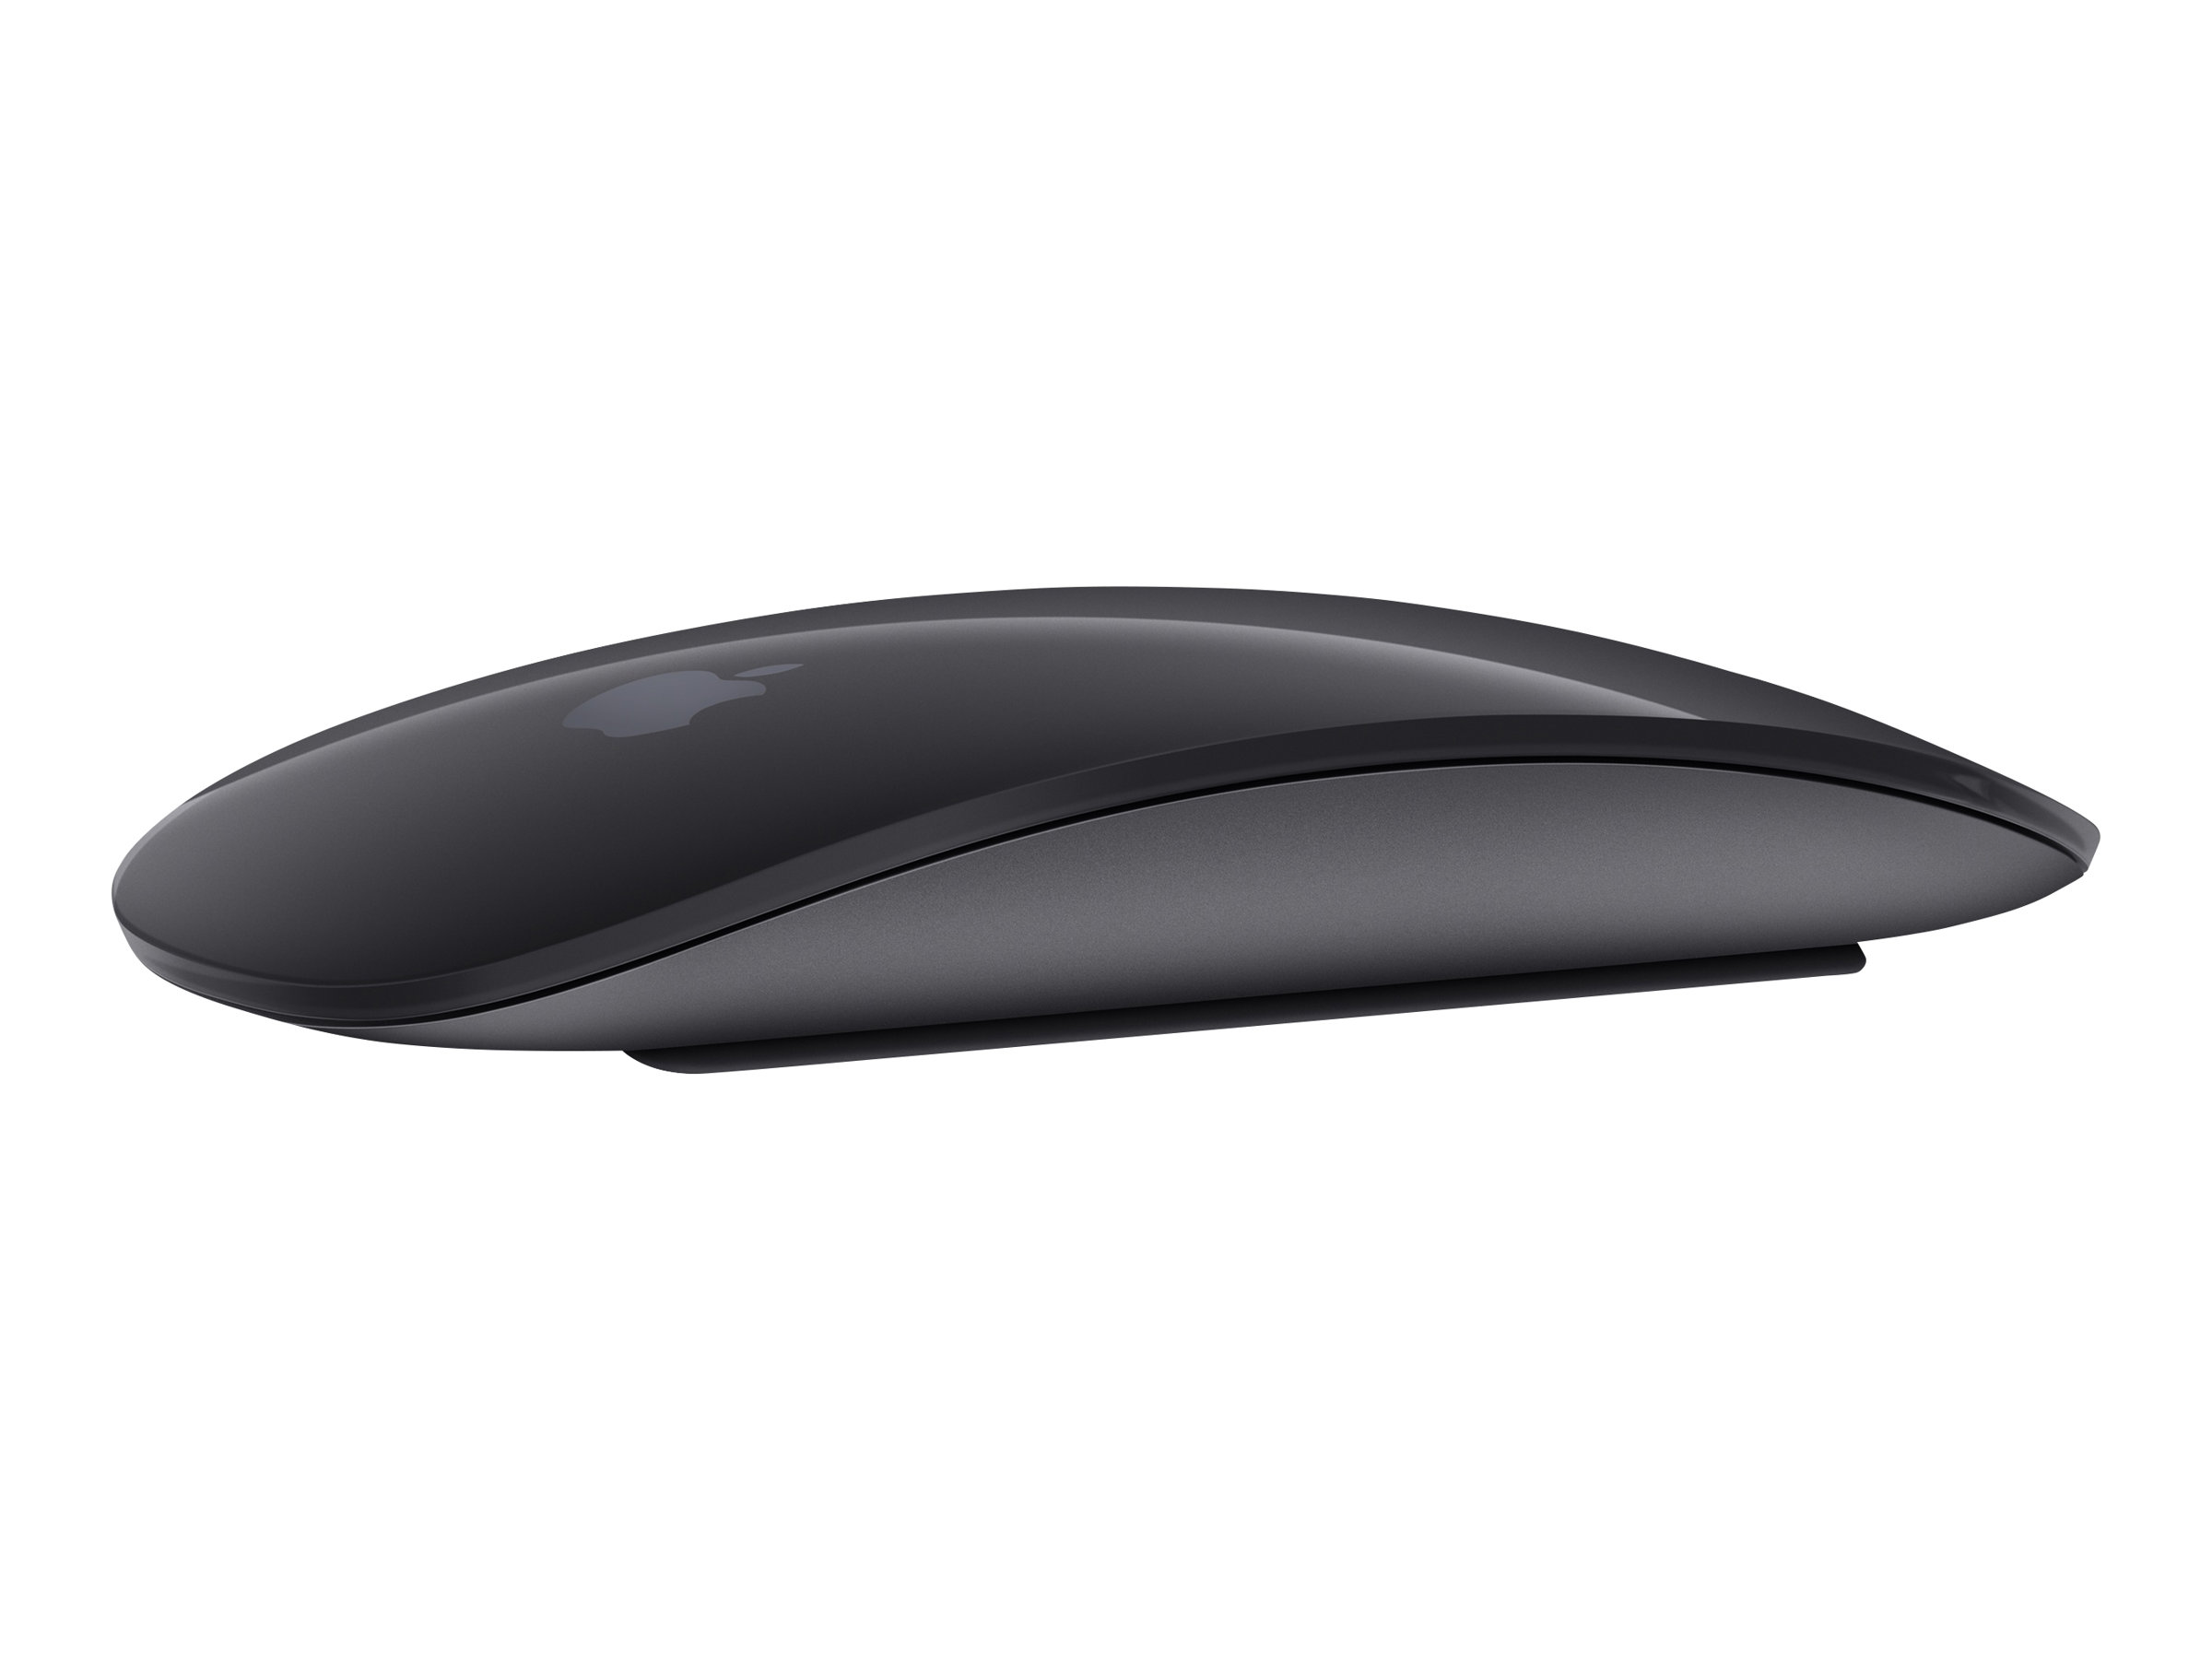 Apple Magic Mouse 2 - Maus - Multi-Touch - kabellos